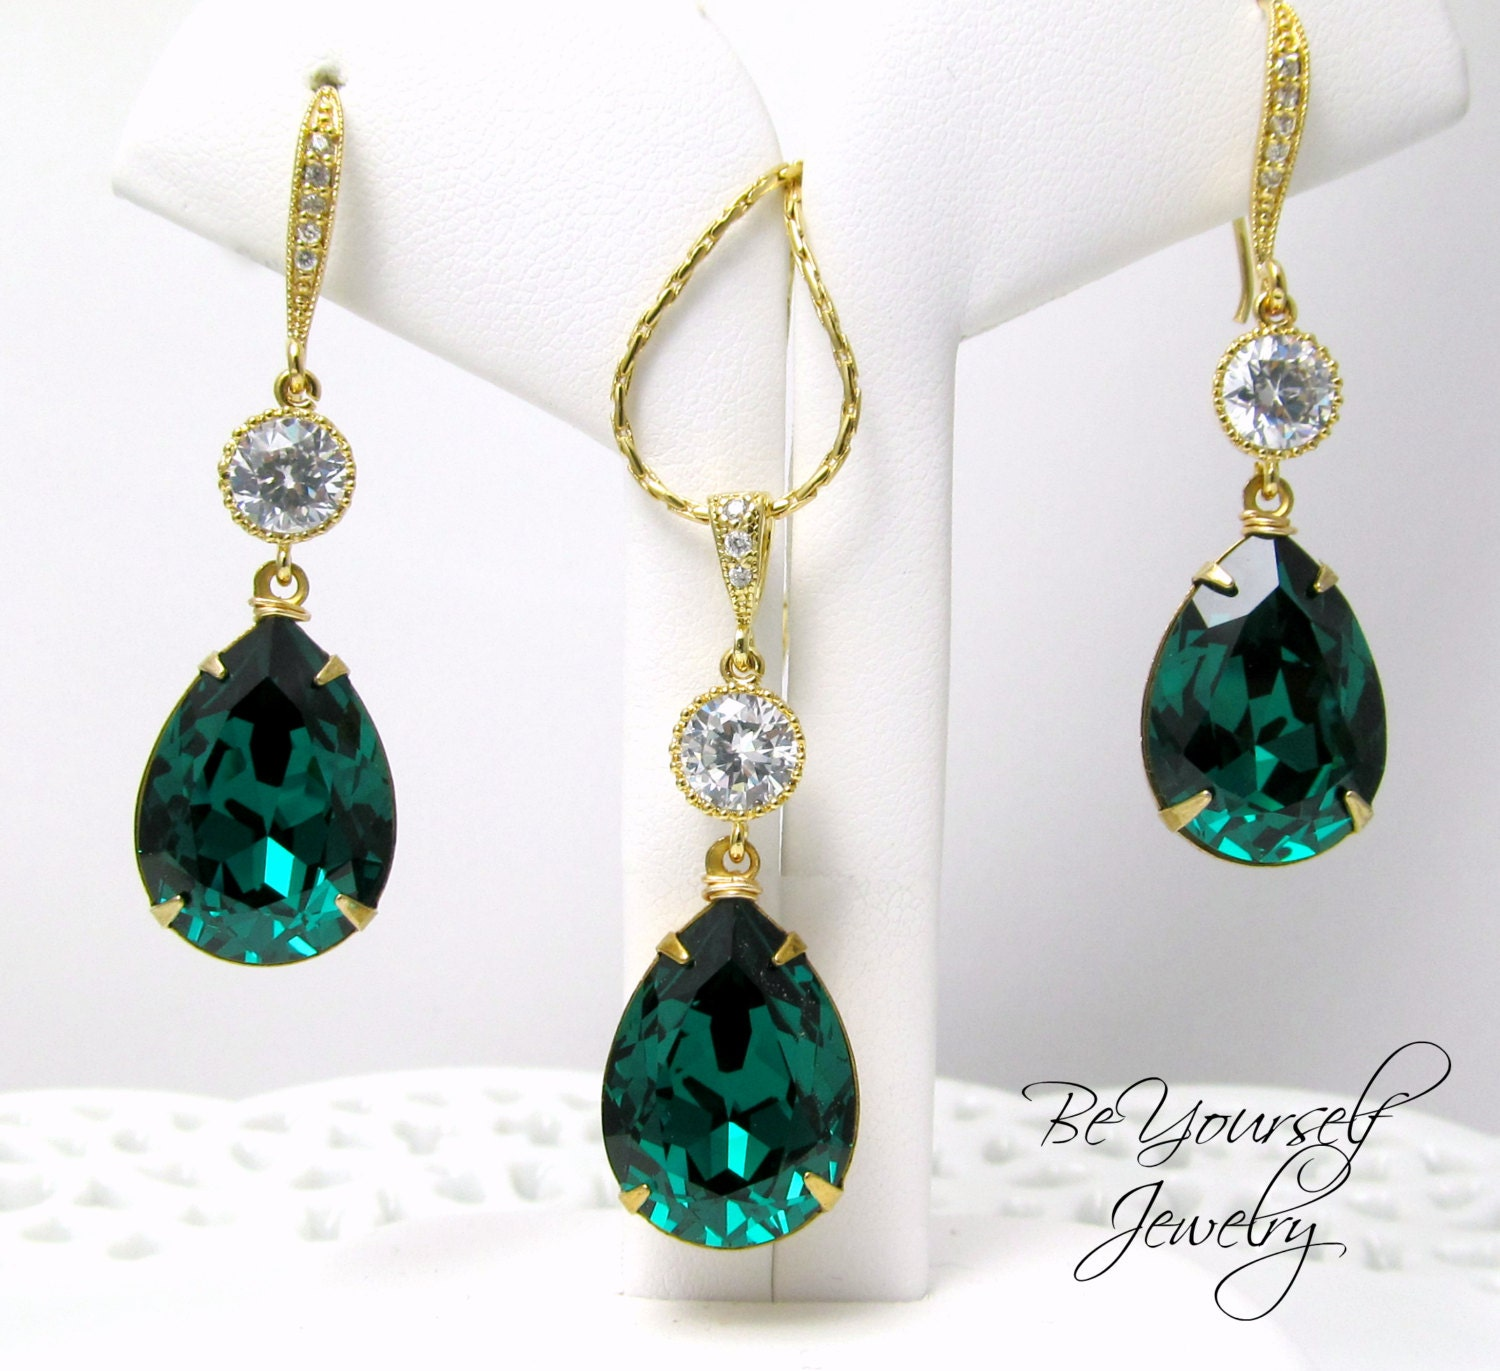 emerald green earrings and necklace set by beyourselfjewelry